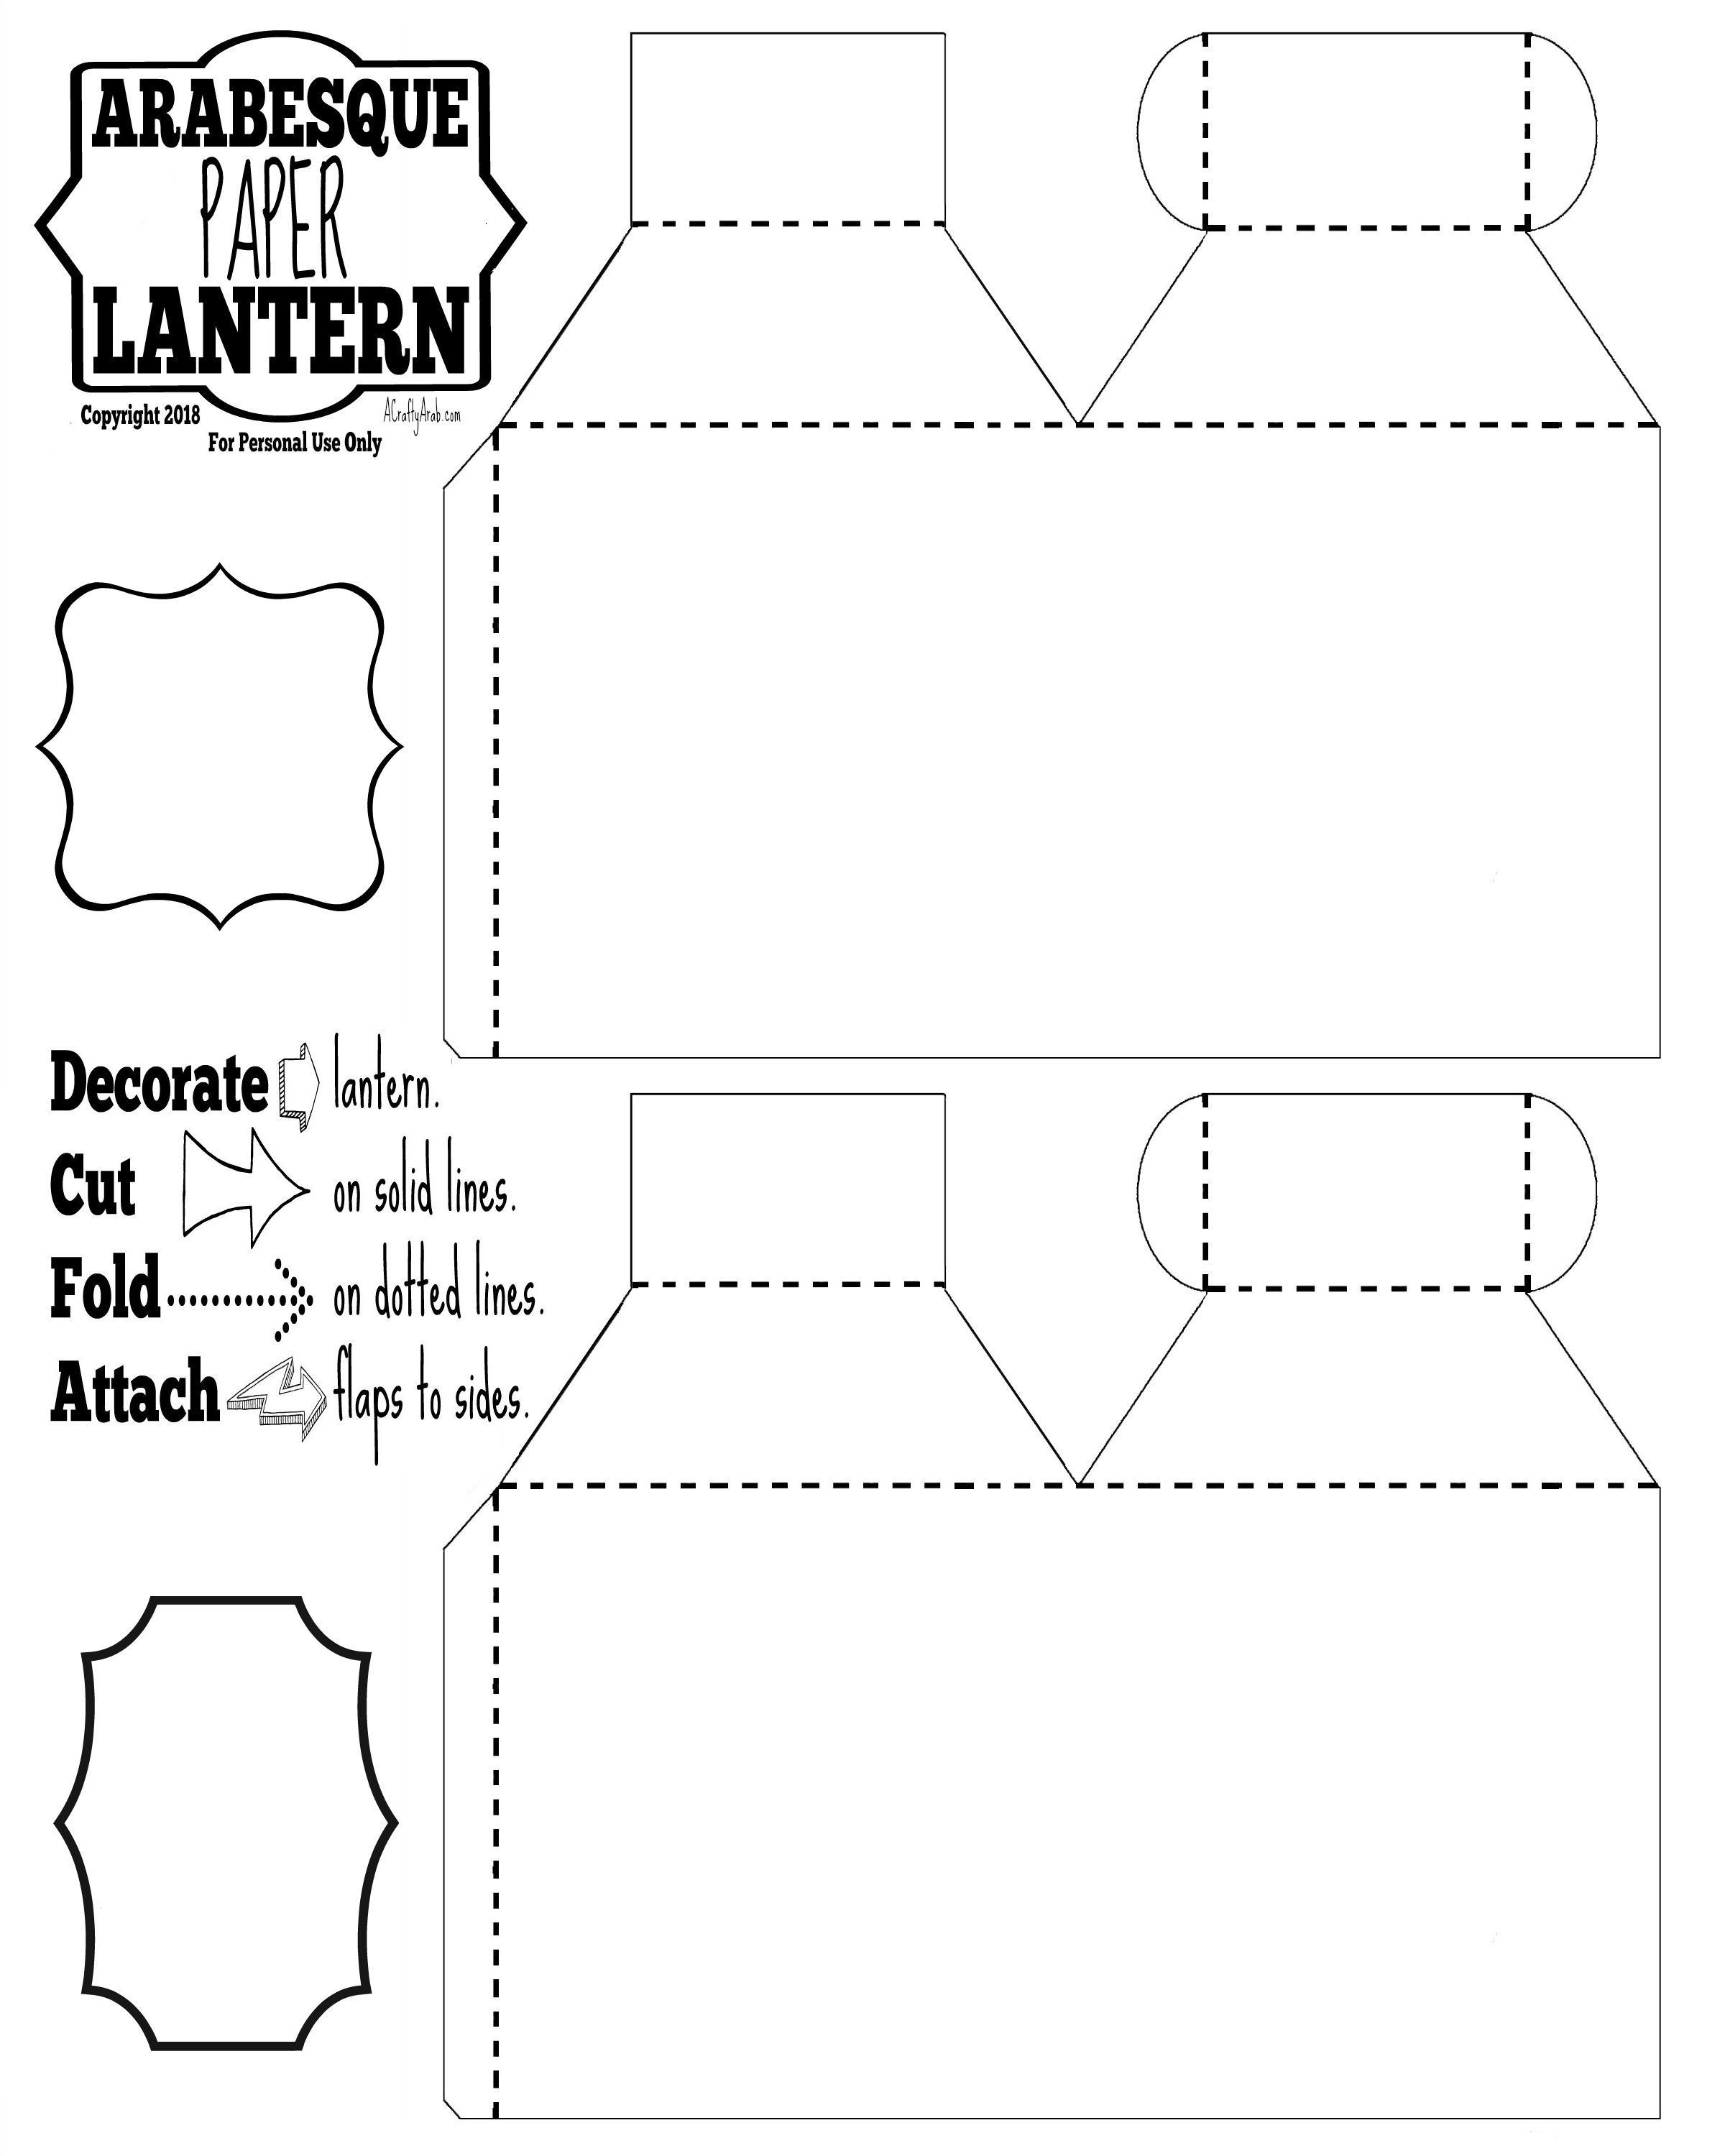 photograph about Lantern Template Printable identify Arabesque Paper Lanterns Printable by means of A Cunning Arab